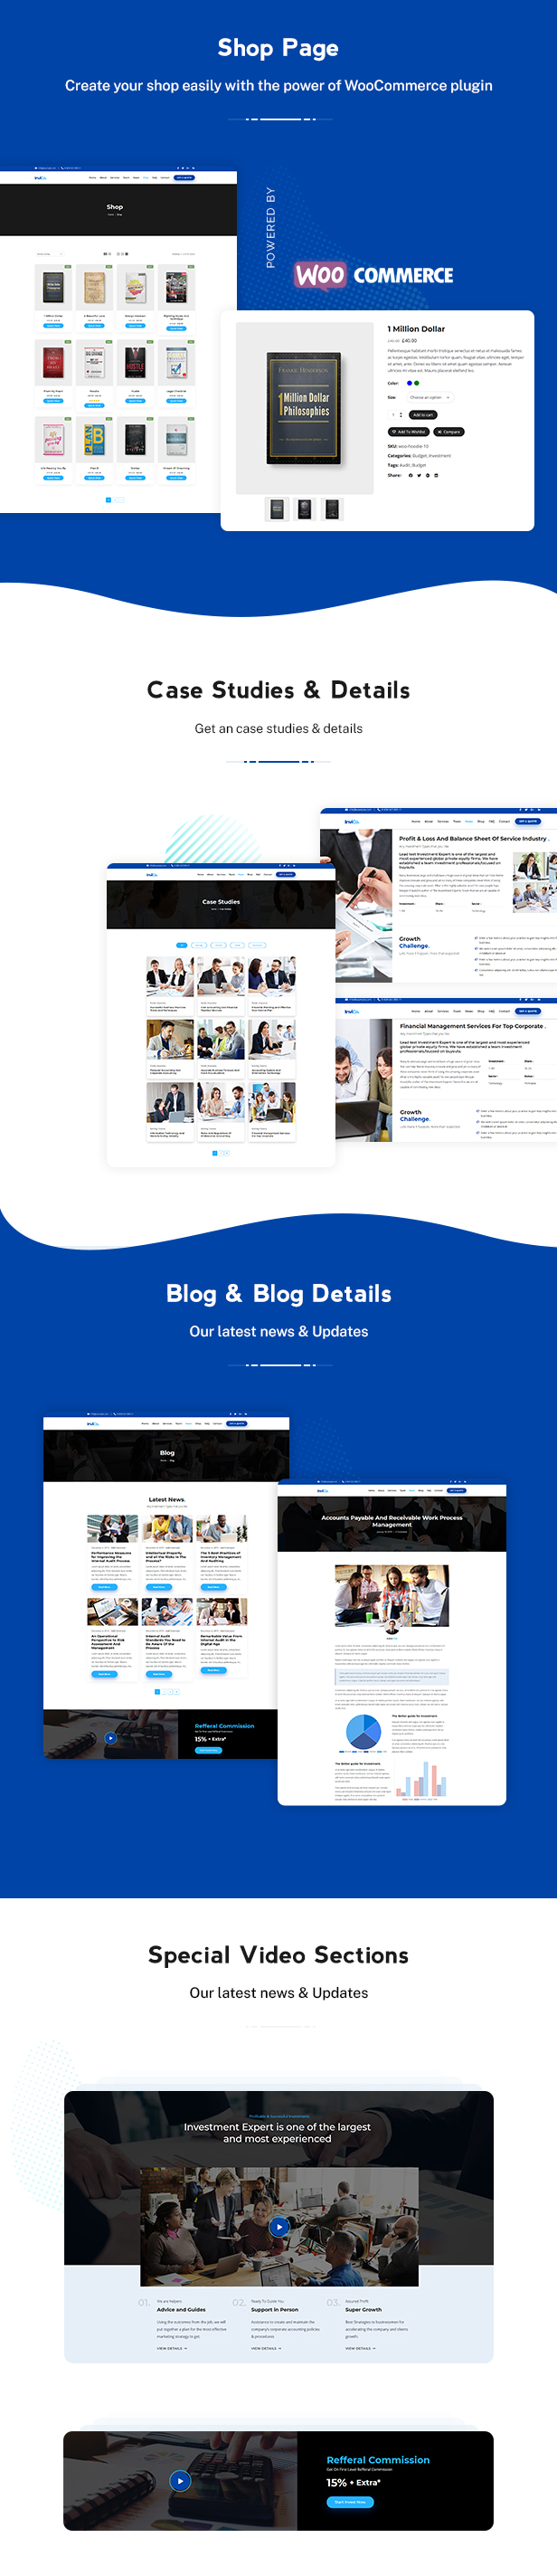 Invico - Consulting WordPress Theme - 2